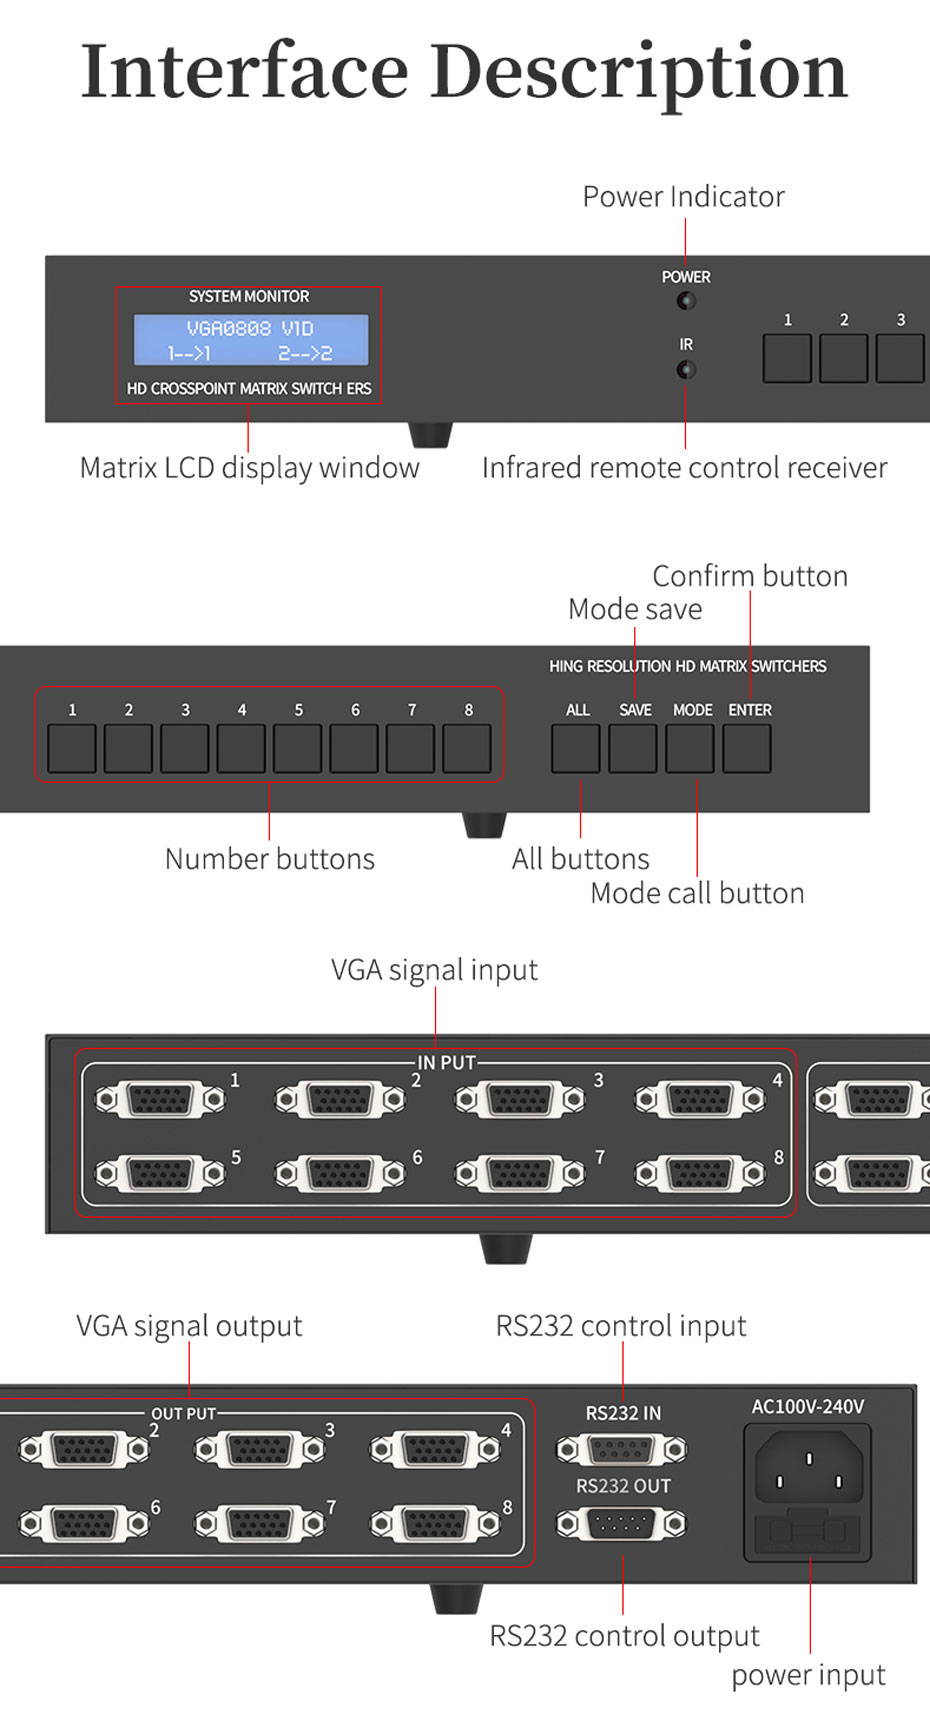 8x8 V818 control panel and interface description of VGA matrix switcher with RS232